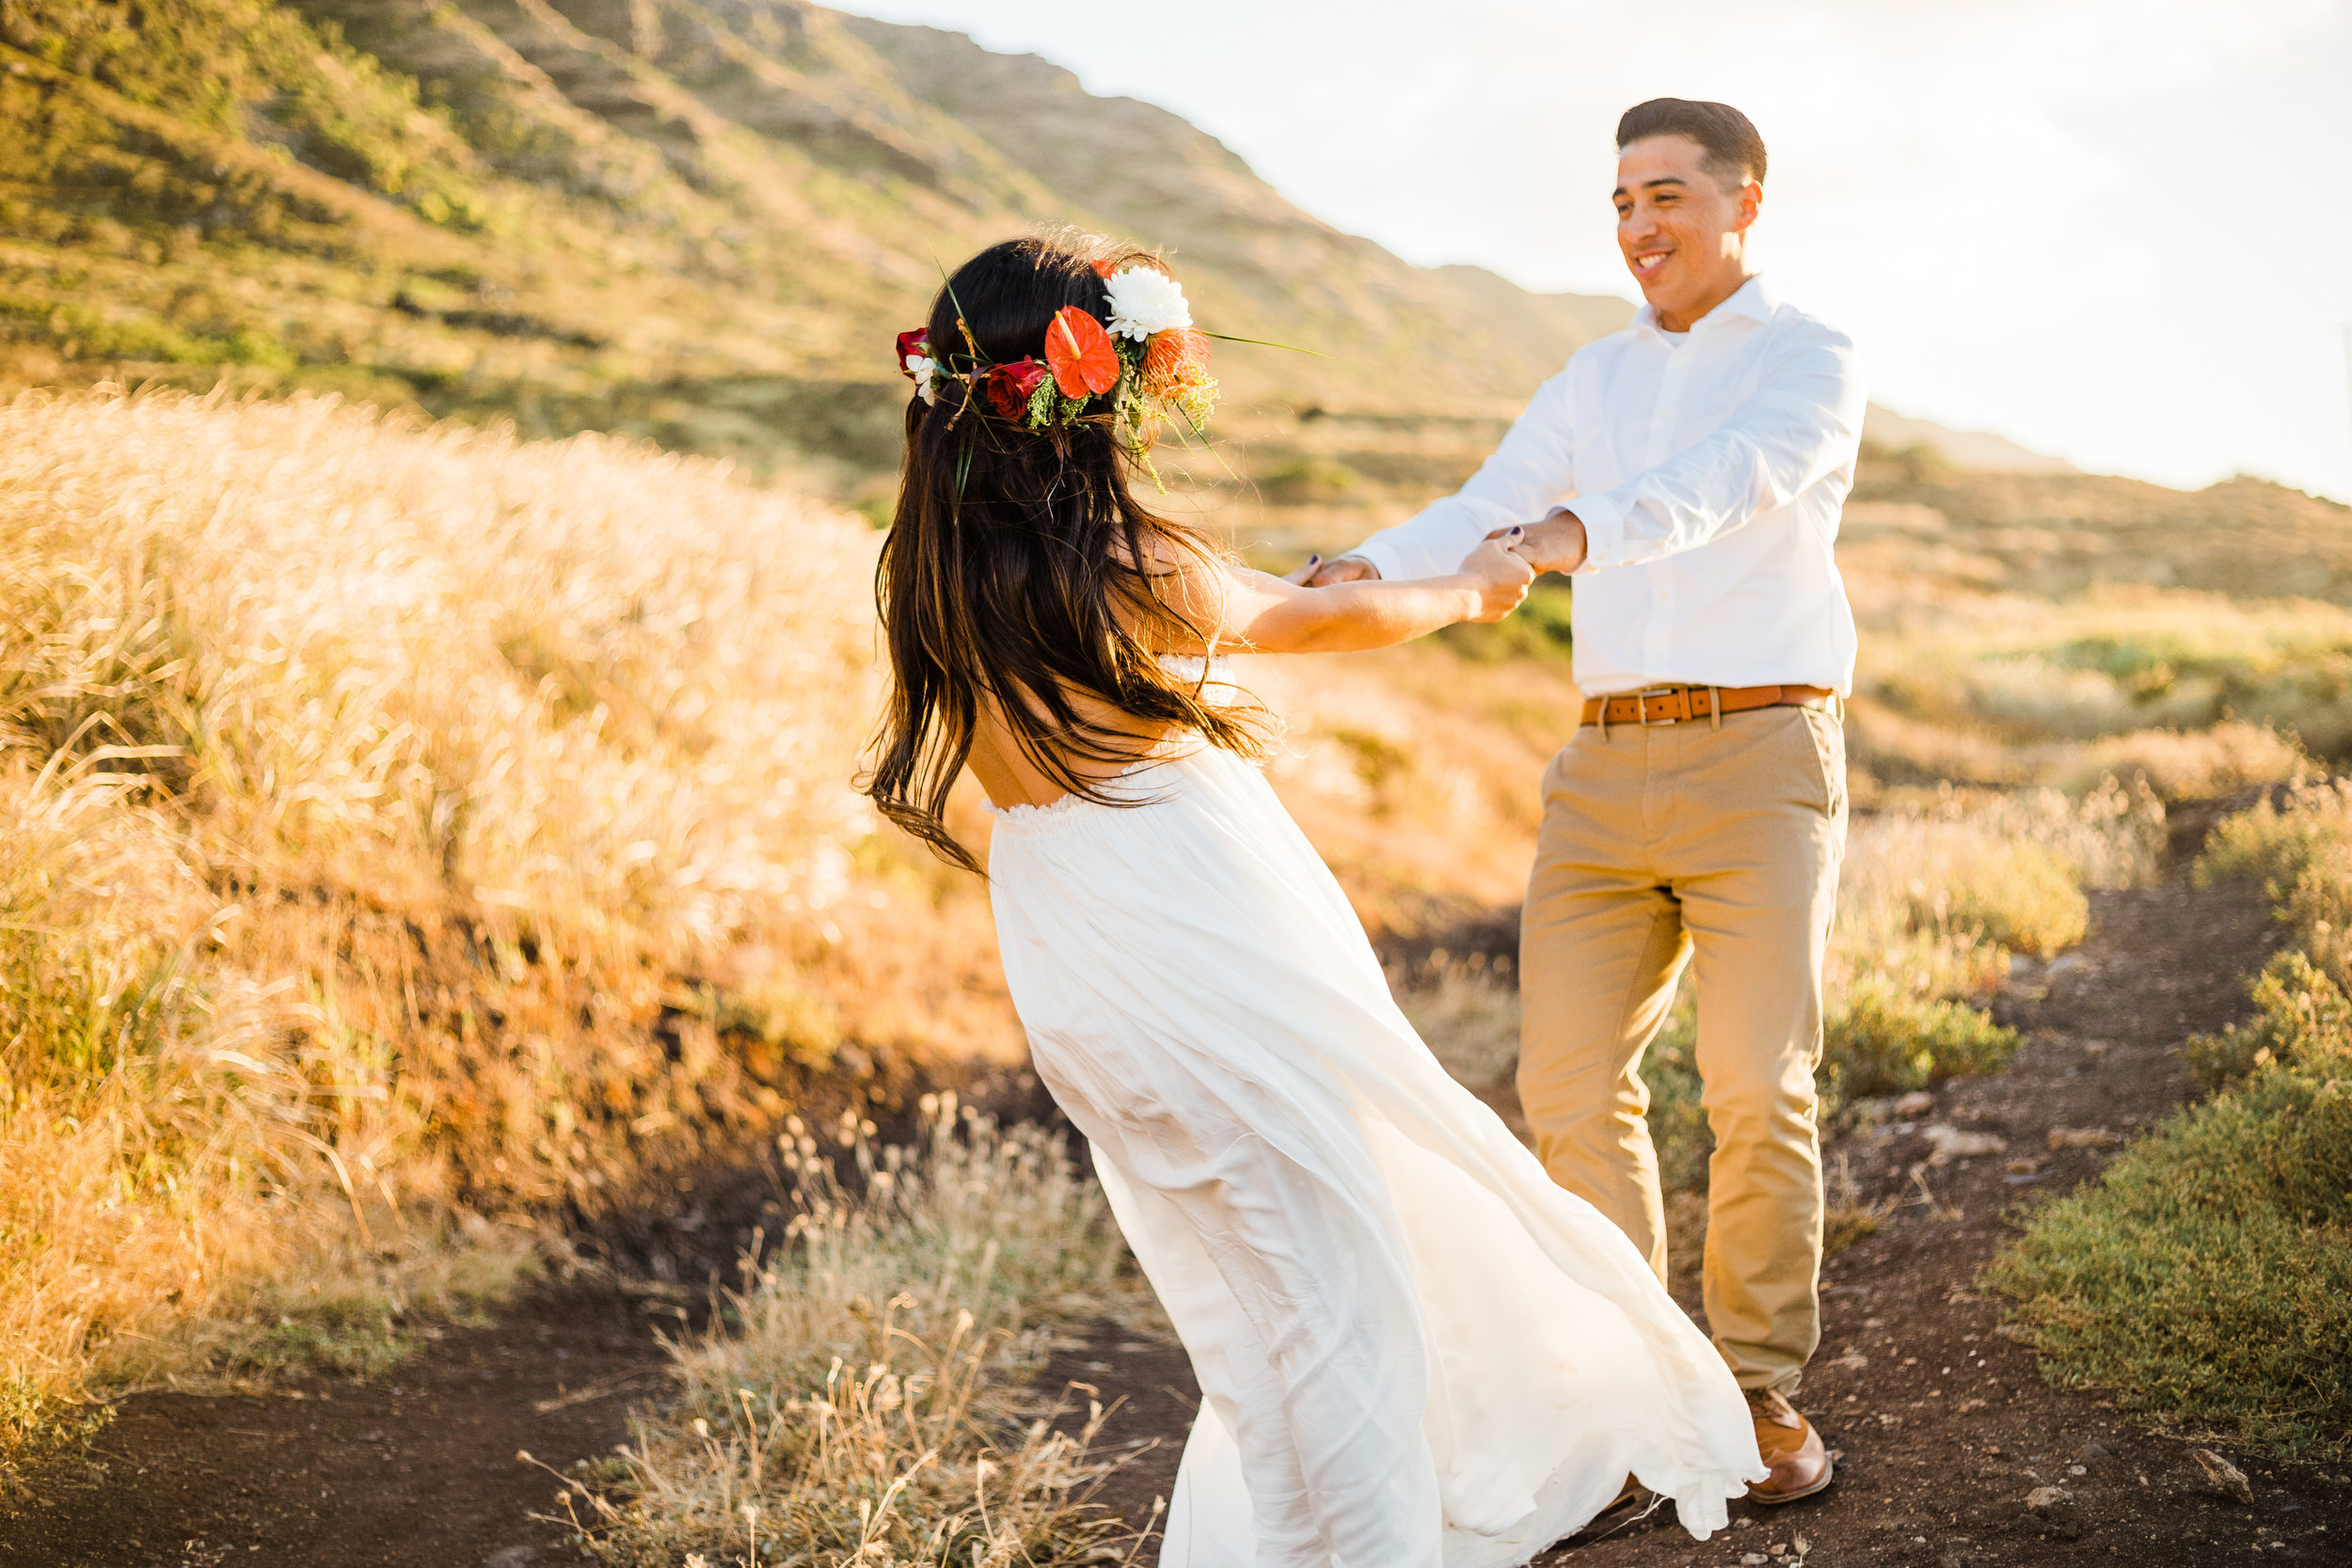 intimate-elopement-sunset-oahu-haku-14.jpg